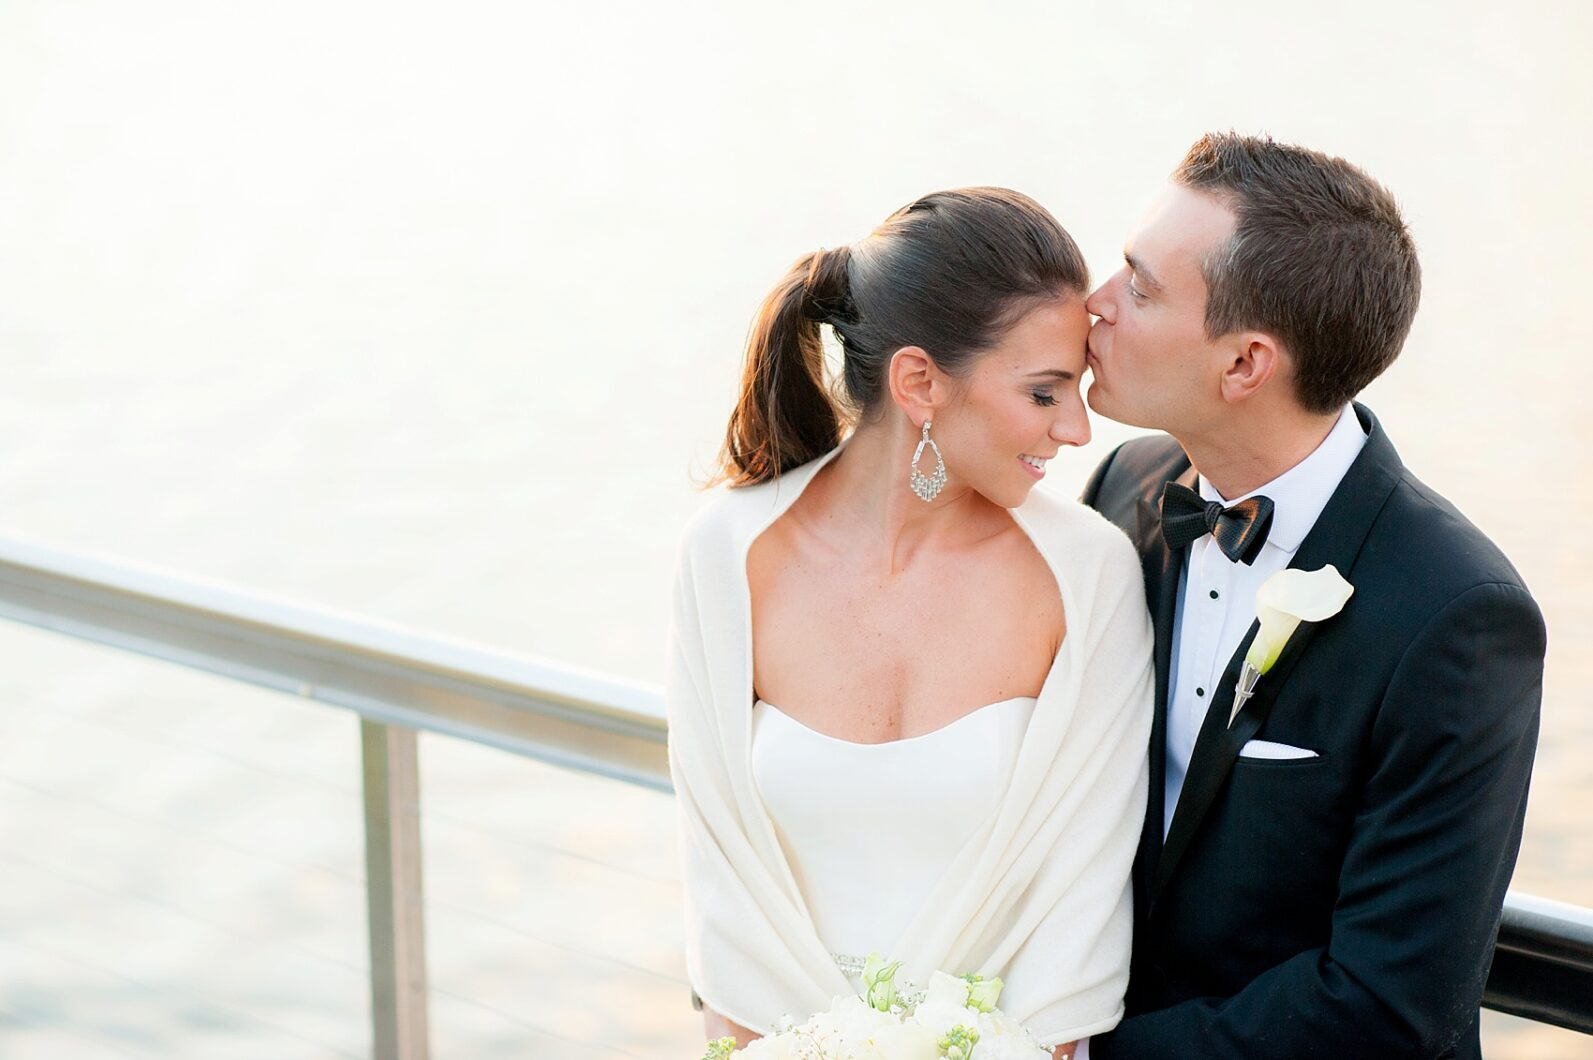 Harbor Club wedding on Long Island with Mikkel Paige Photography. Bride in Amsale for her New Year's Eve, waterfront wedding.